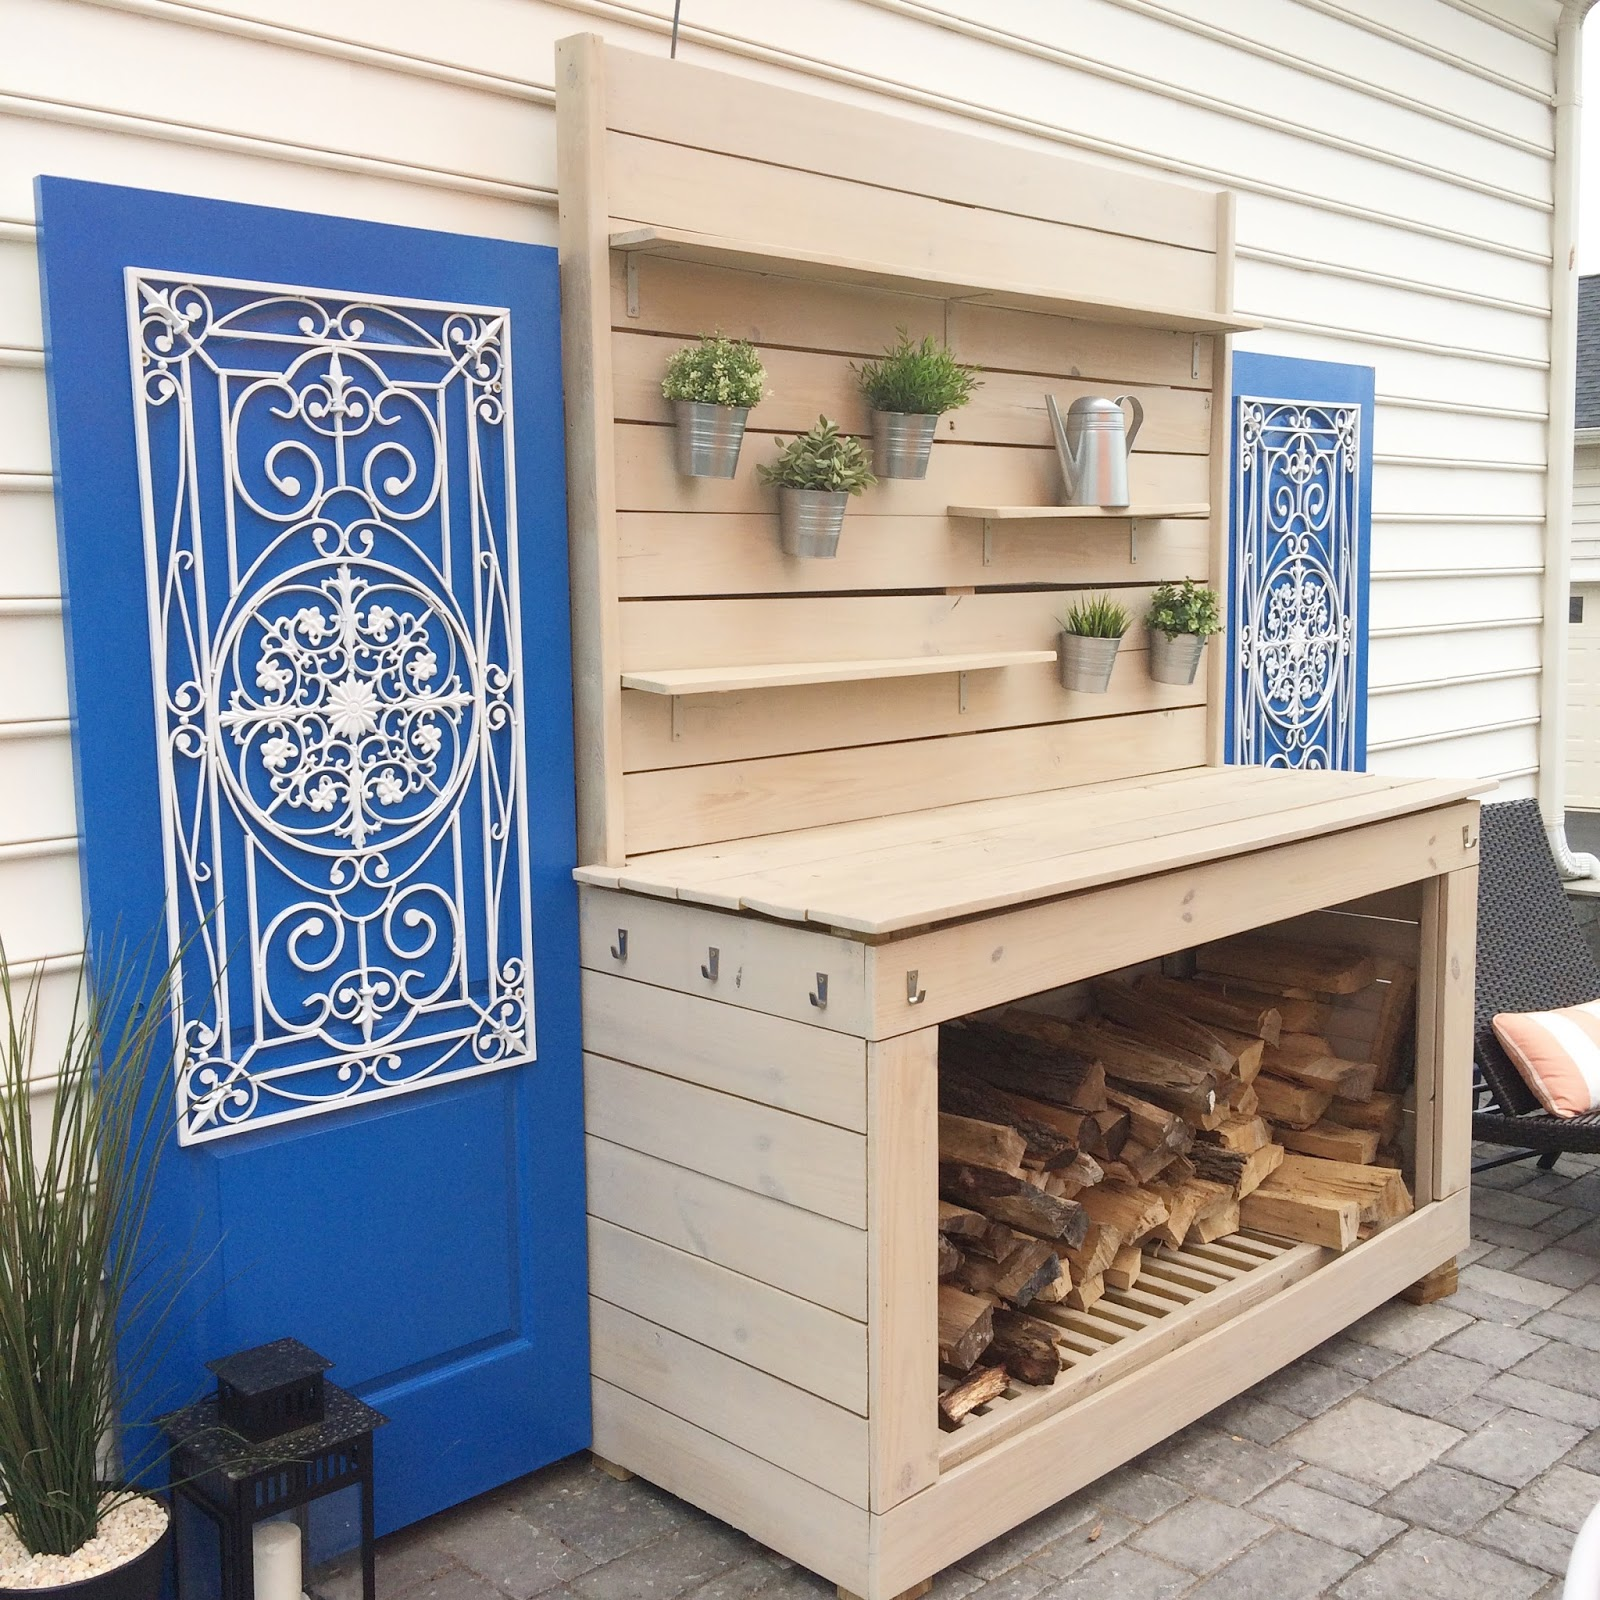 Delicieux Outdoor Patio Reveal   Creating An Inviting Space   LeroyLime